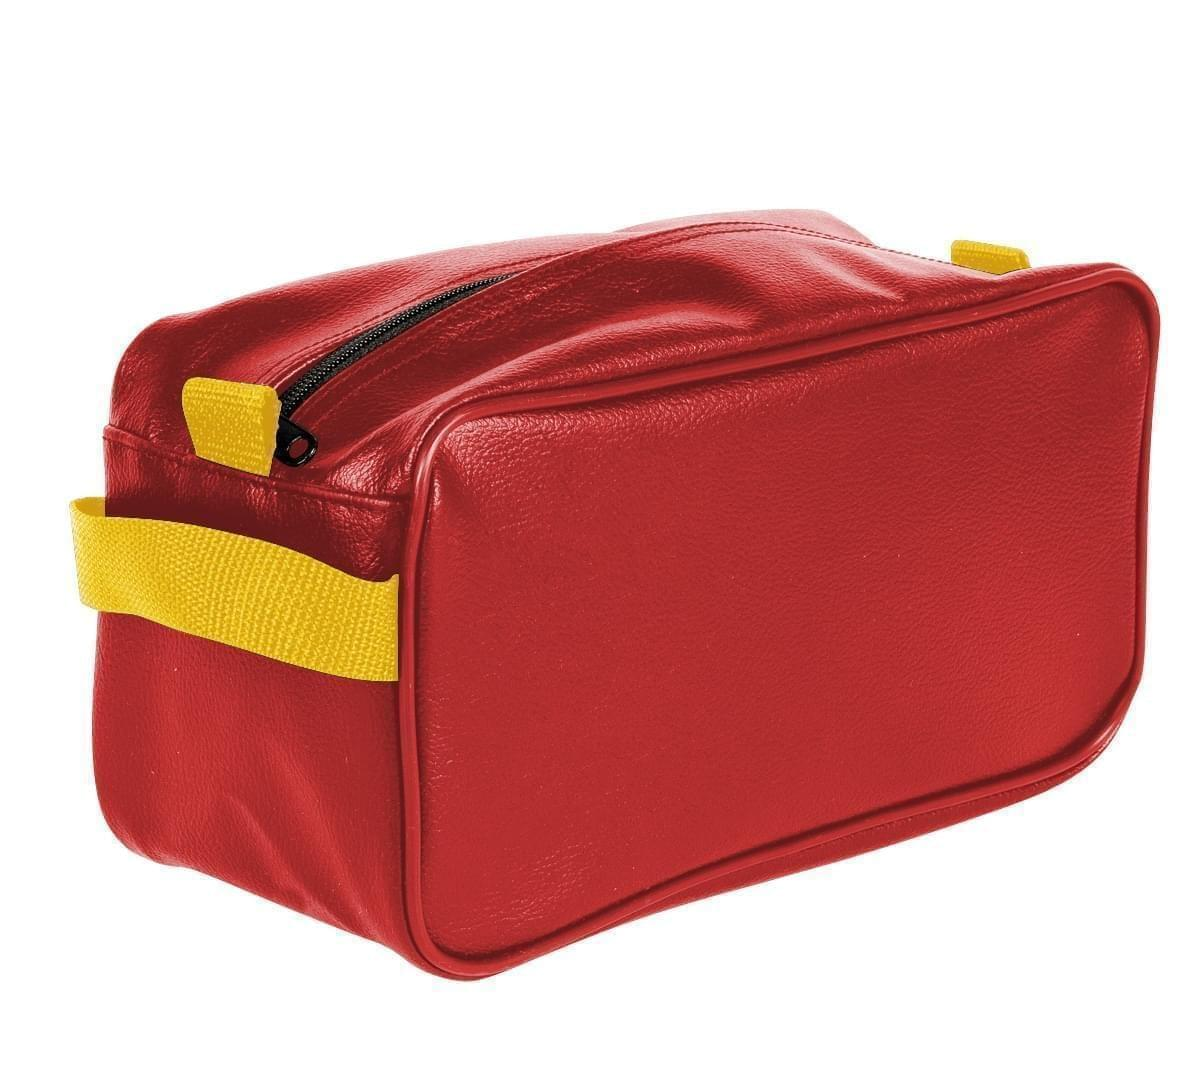 USA Made Cosmetic & Toiletry Cases, Red-Gold, 3000996-AZ5